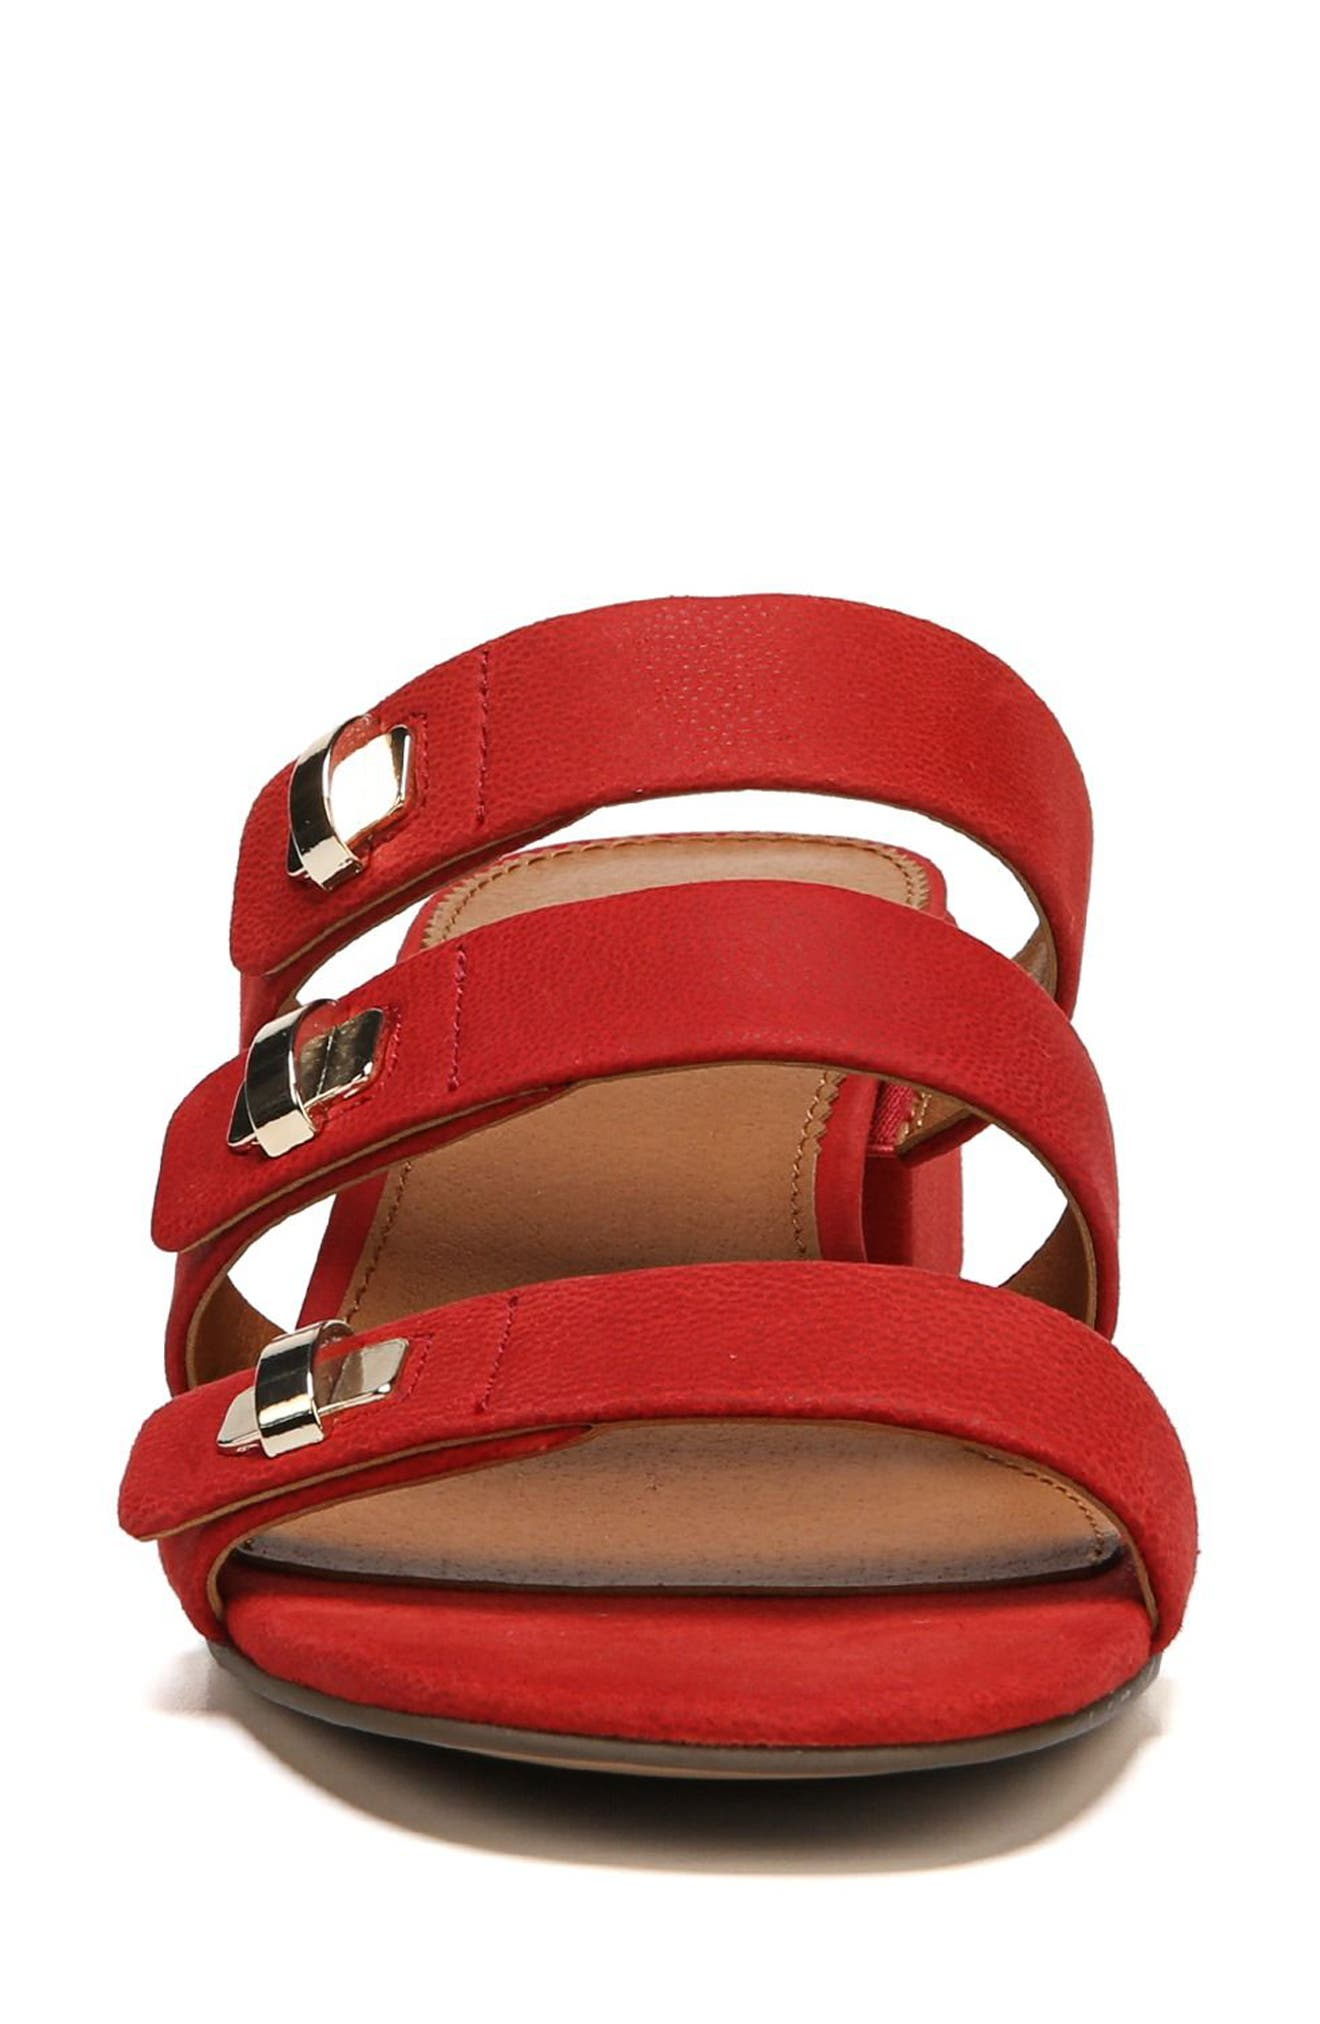 Arabesque Strappy Slide Sandal,                             Alternate thumbnail 4, color,                             Pop Red Nubuck